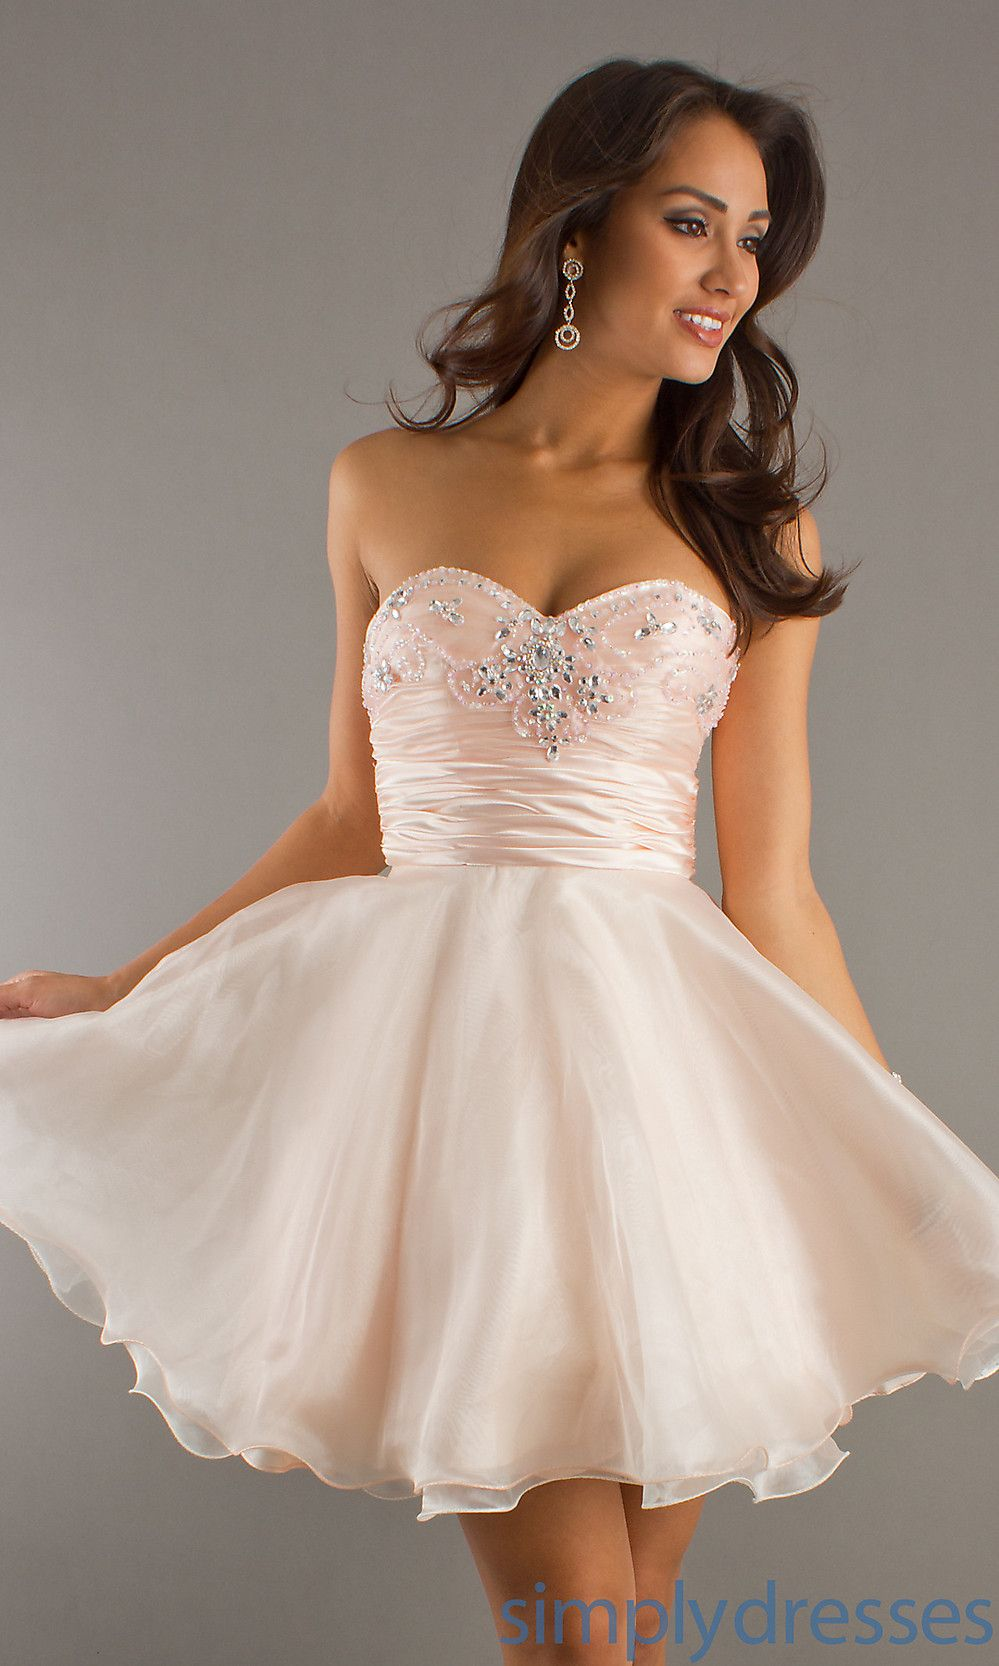 Short Strapless Party Dress Strapless Party Dress Prom Dresses Prom Dresses Short [ 1666 x 999 Pixel ]